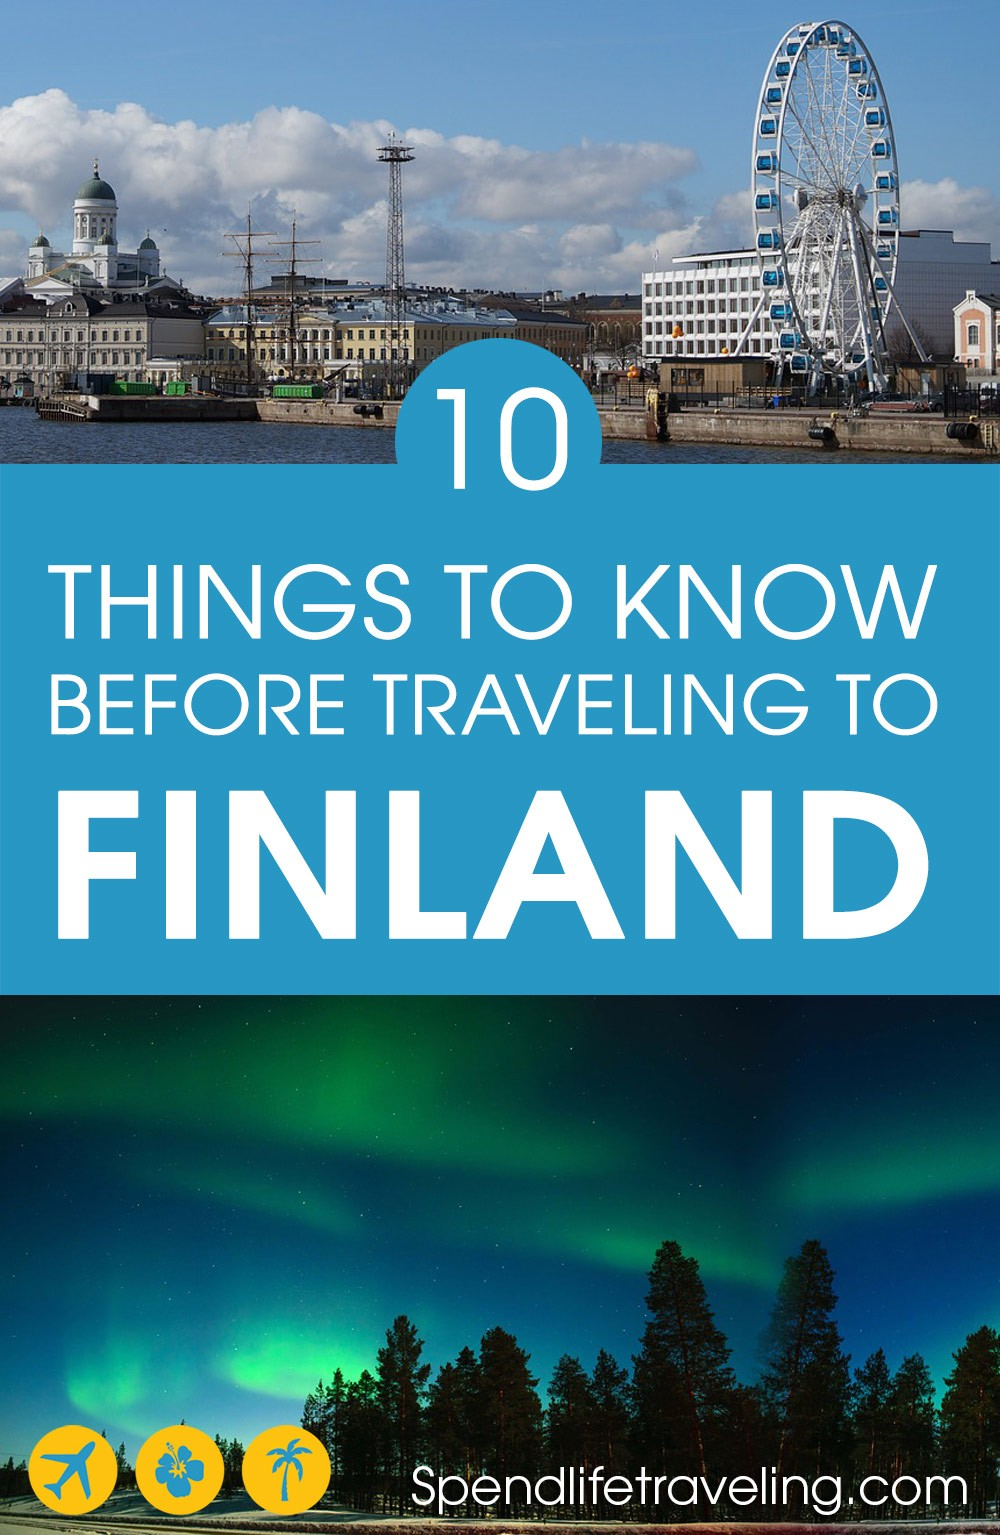 #Finland is a beautiful country with stunning nature, history and of course incredible Lapland. But, before you pack your bags and travel to Finland, check out this list to understand the country and its people a bit better. #traveltips #travelpreparation #nordic #Europe #whytravel